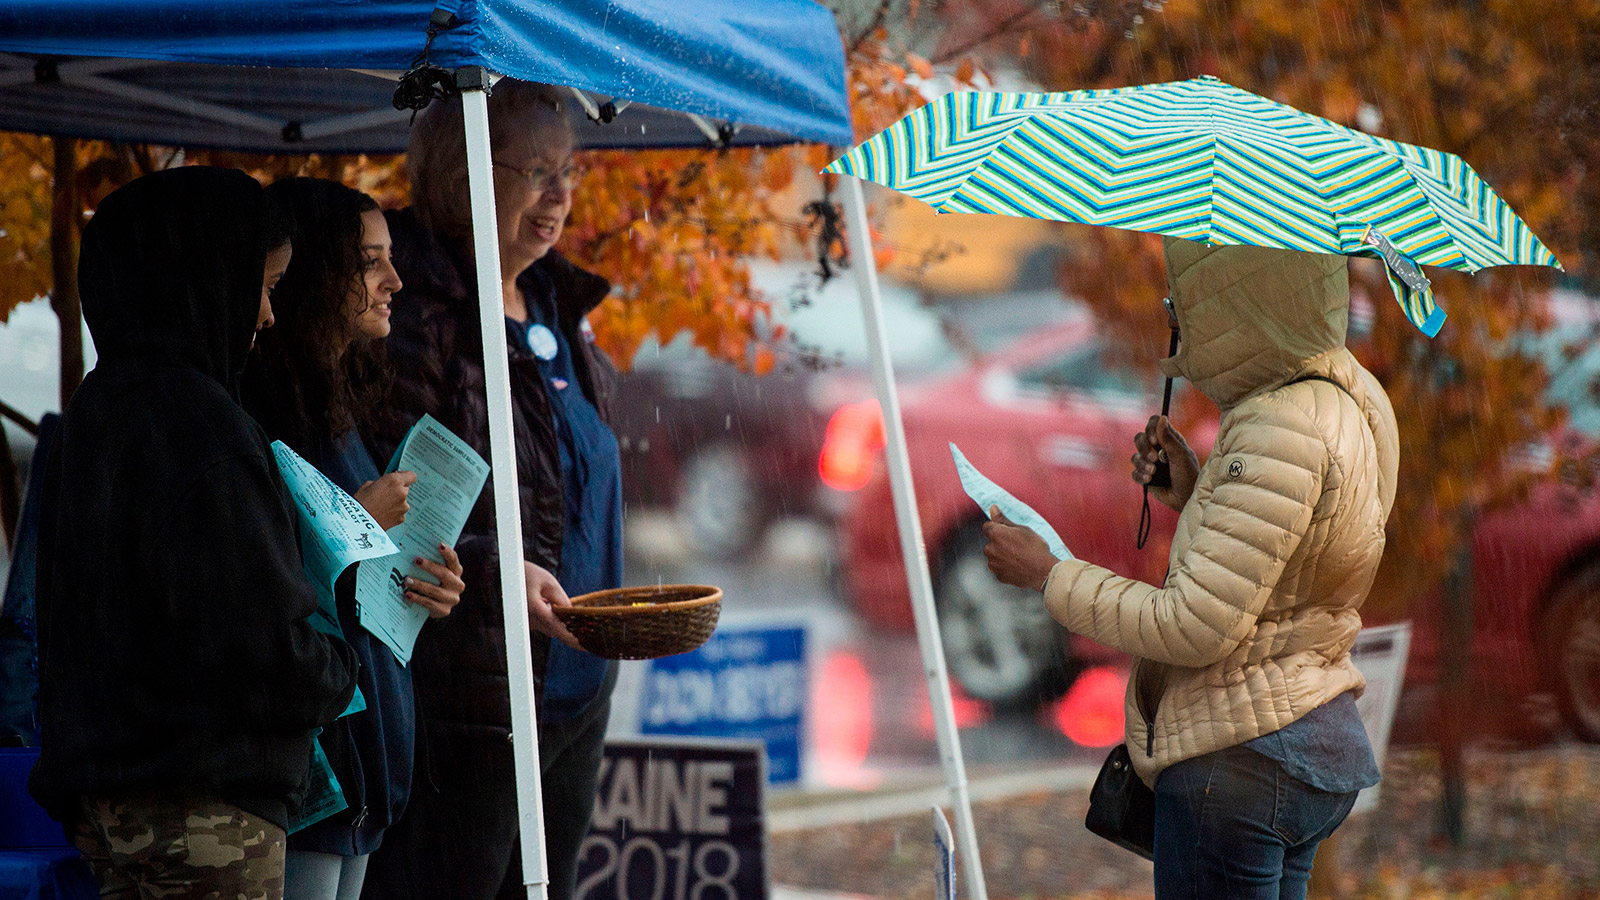 Volunteers with the Democratic party speak to voters outside of a polling station during the mid-term elections at the Fairfax County bus garage in Lorton, Virginia on November 6, 2018.